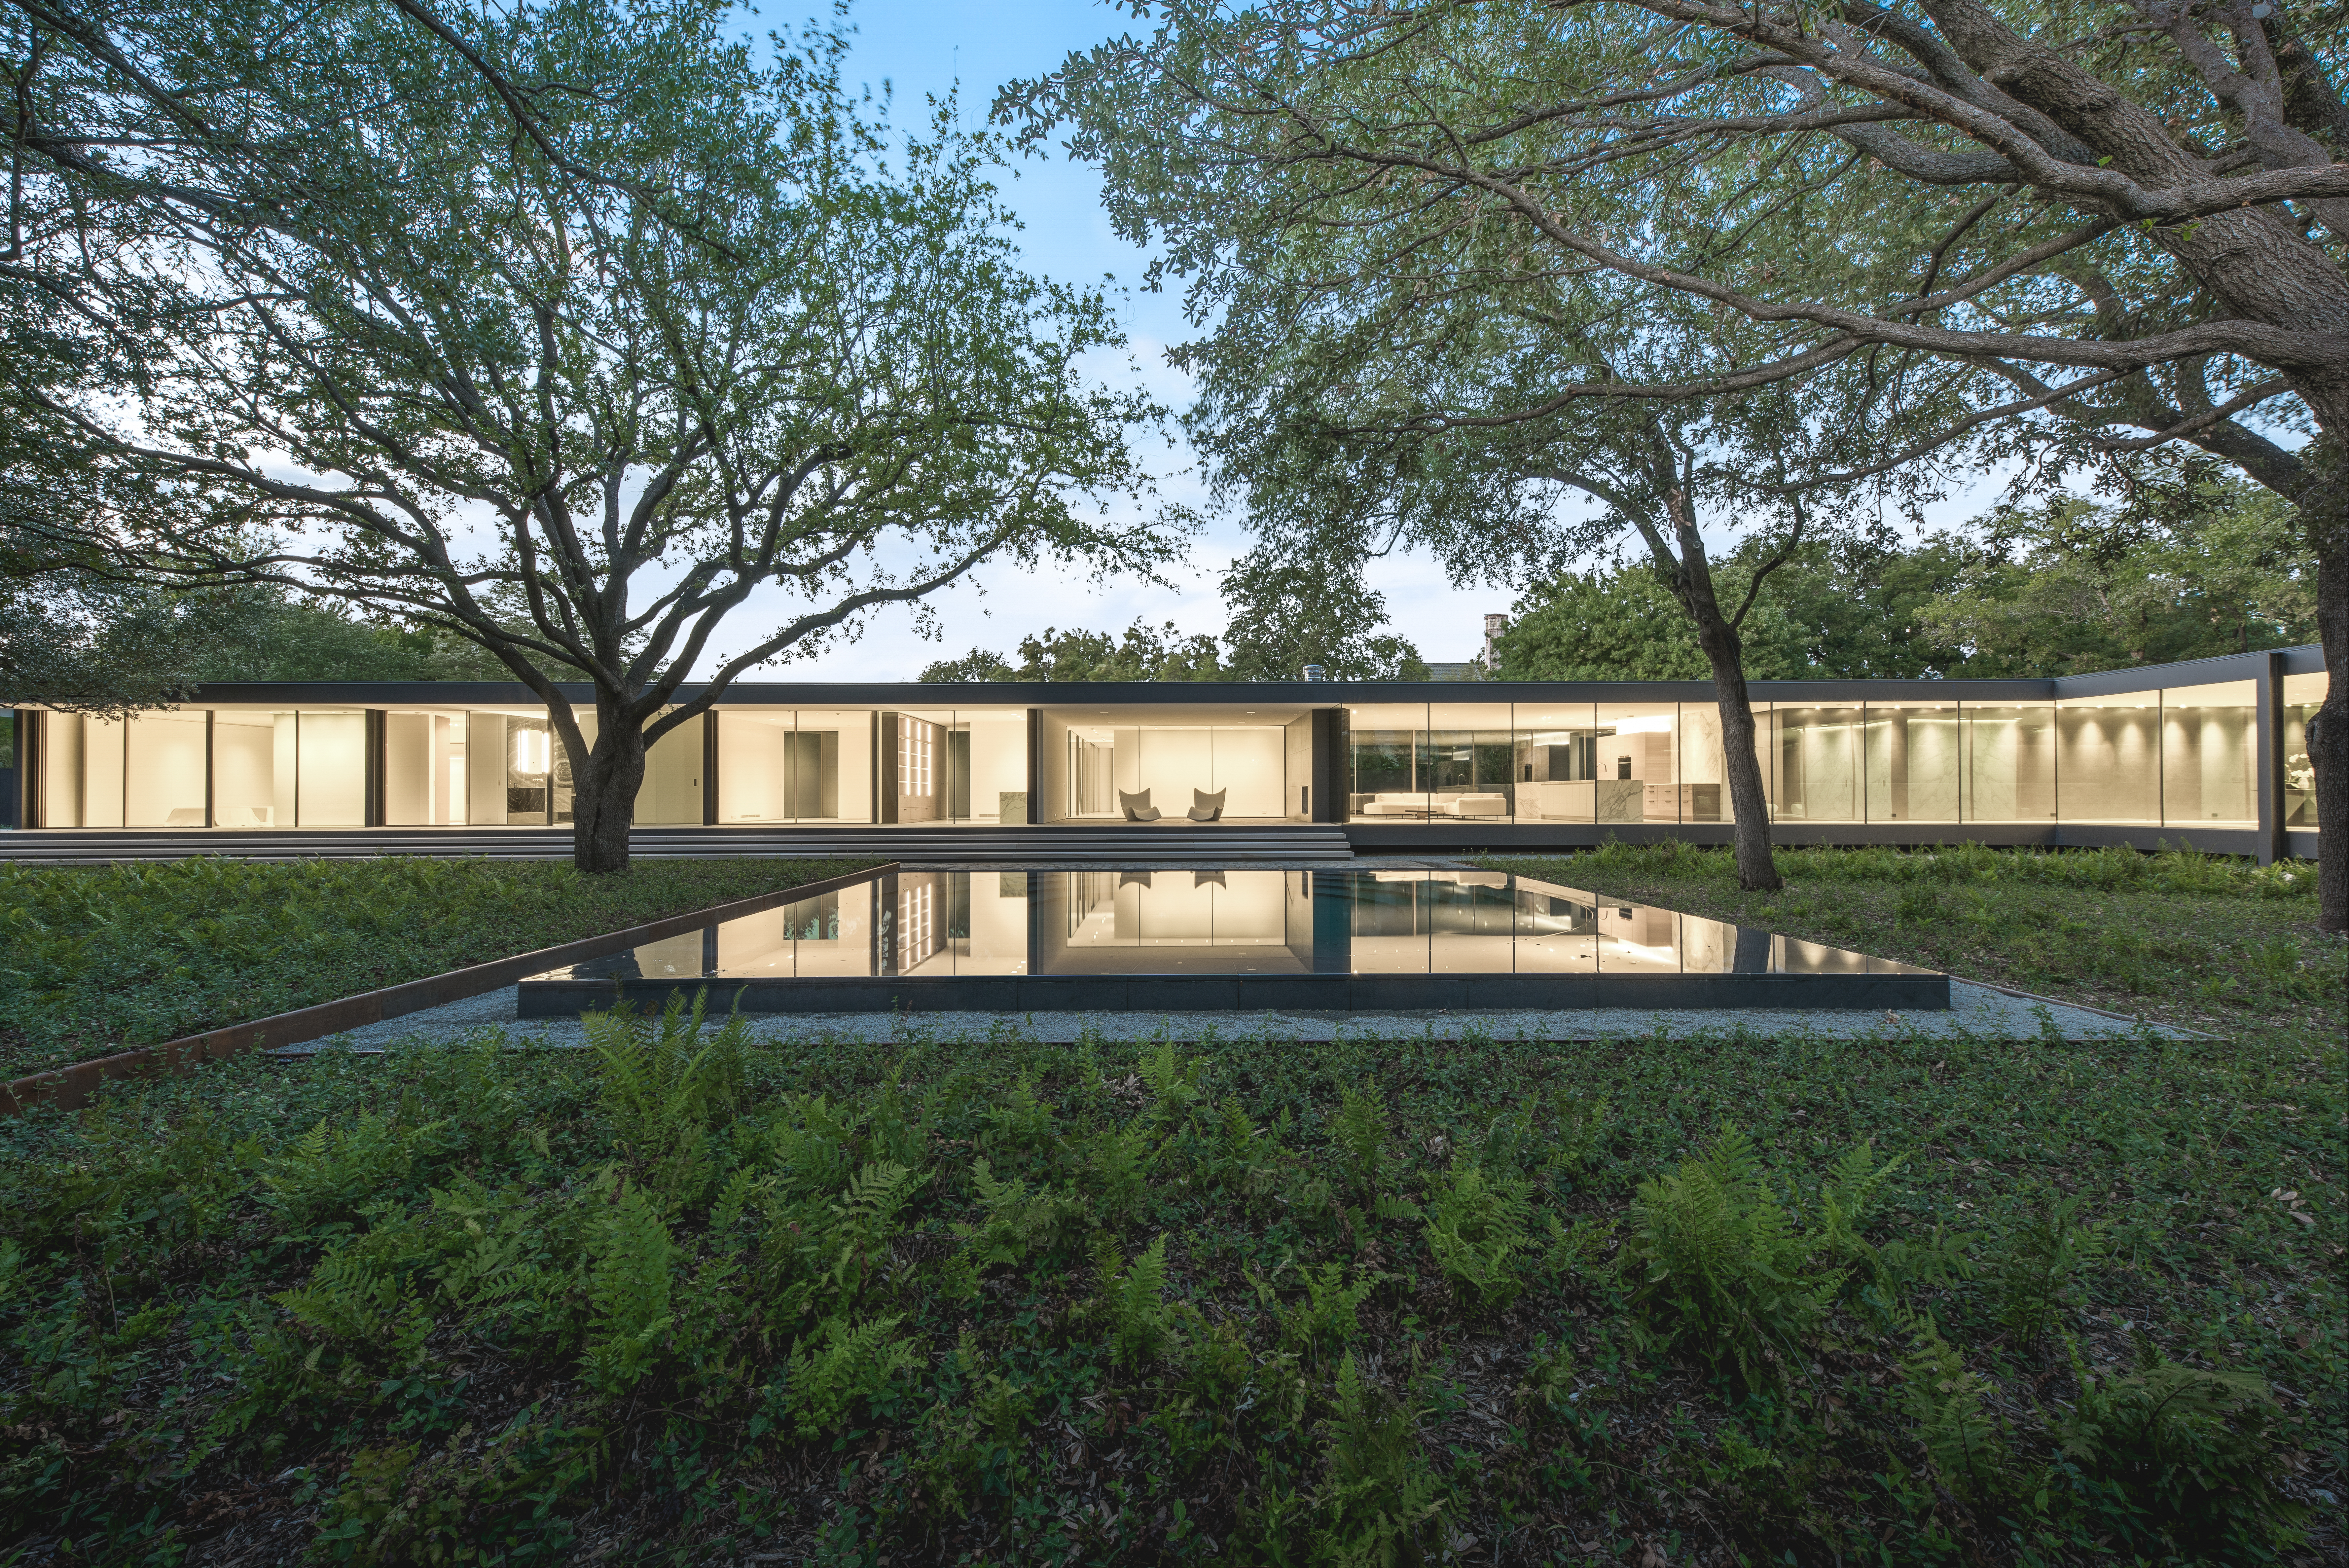 An exterior view of a Dallas, Texas, home for sale that is lit up at dusk. The long horizontal home has a reflecting in front with trees and grass on the side.